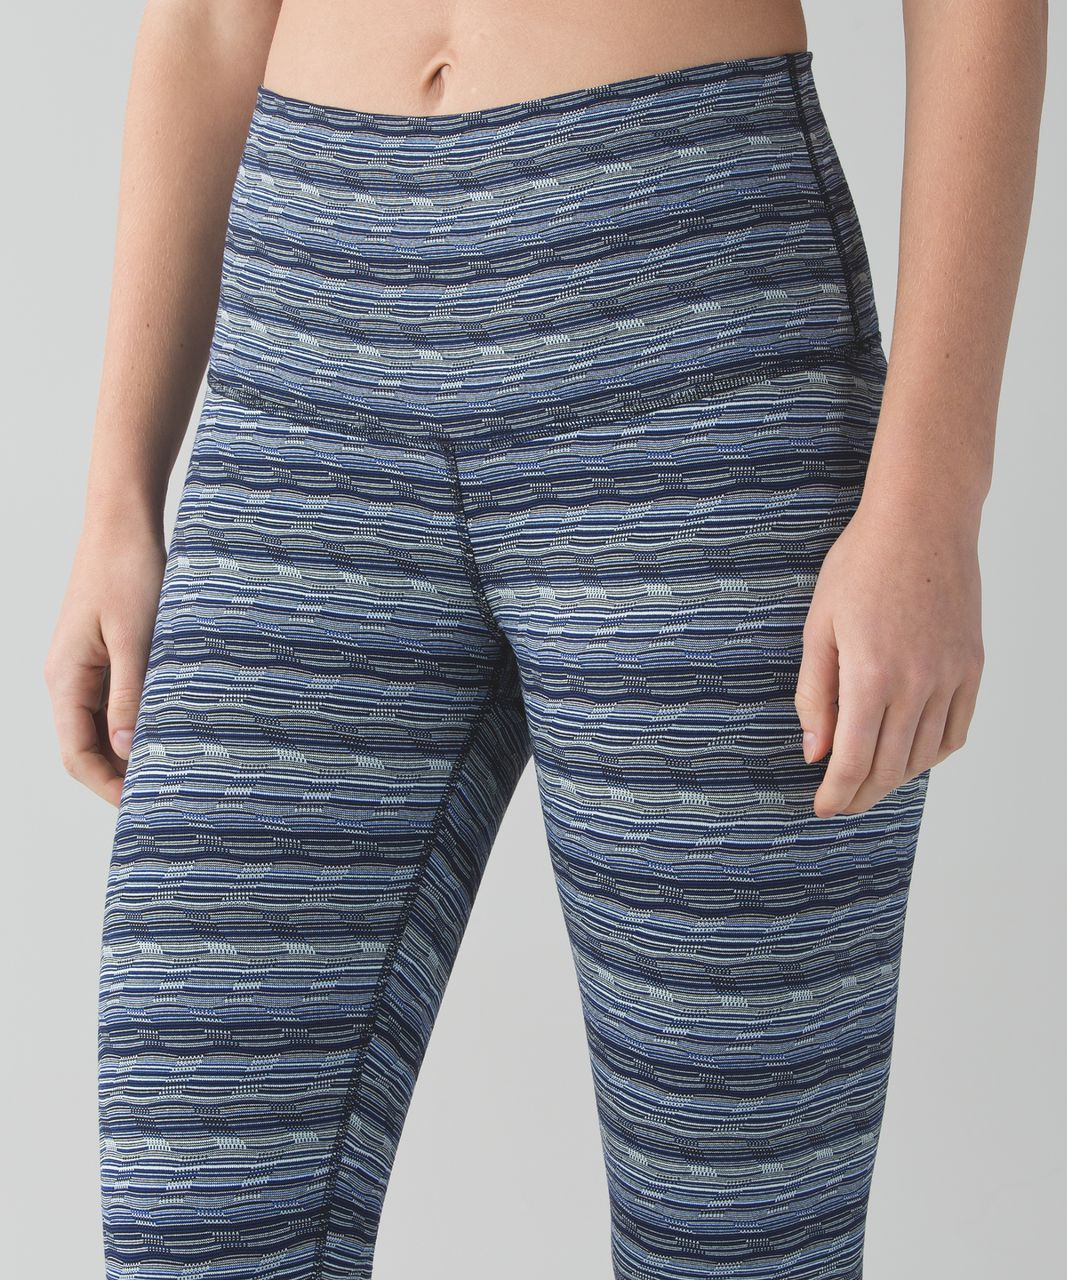 Lululemon Wunder Under Crop (Hi-Rise) - Space Dye Twist Sapphire Blue Multi